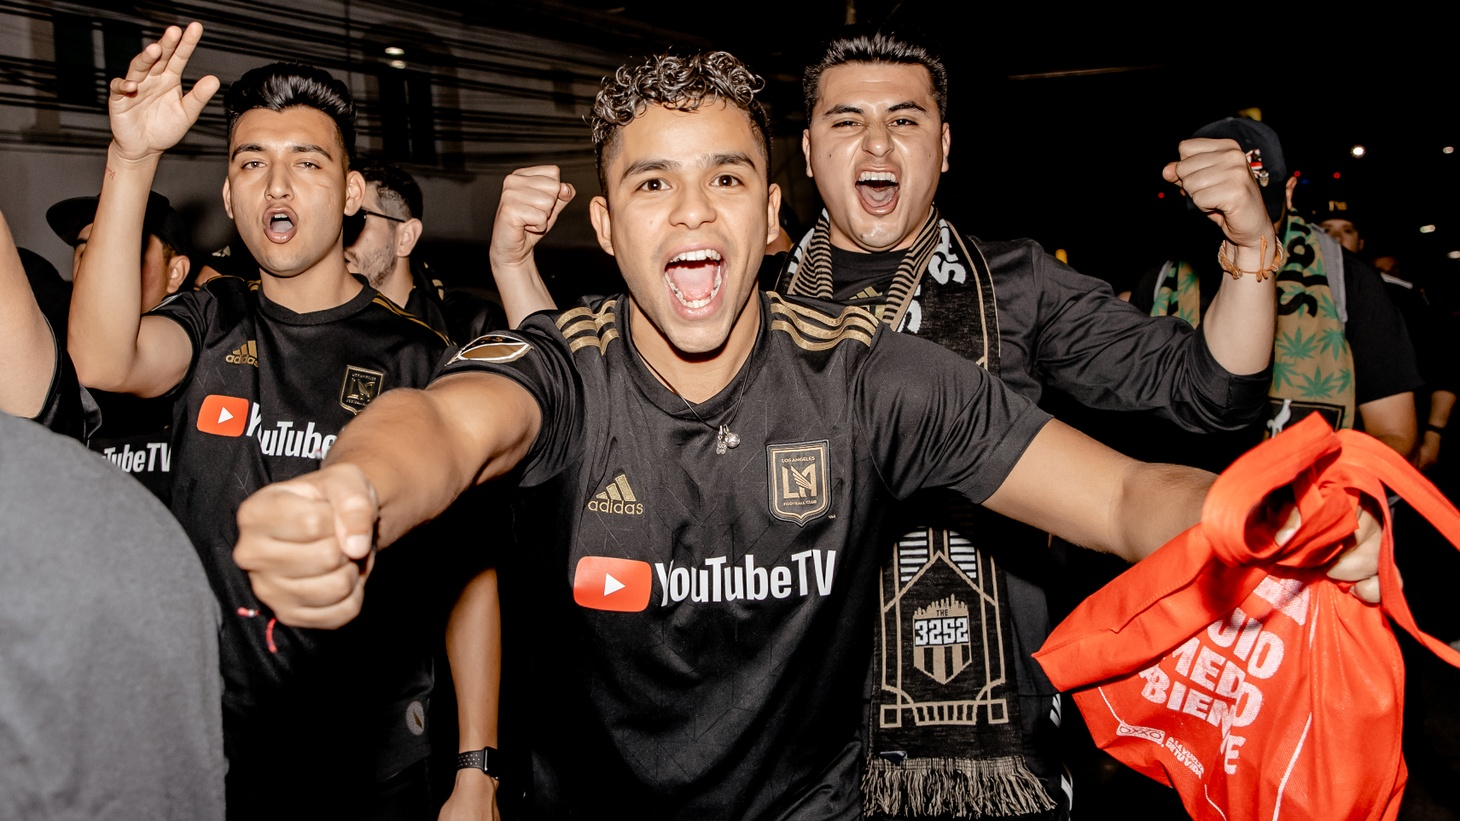 Los Angeles Football Club supporters sing and chant as they march to Estadio León for LAFC's first ever CONCACAF Champions League match.